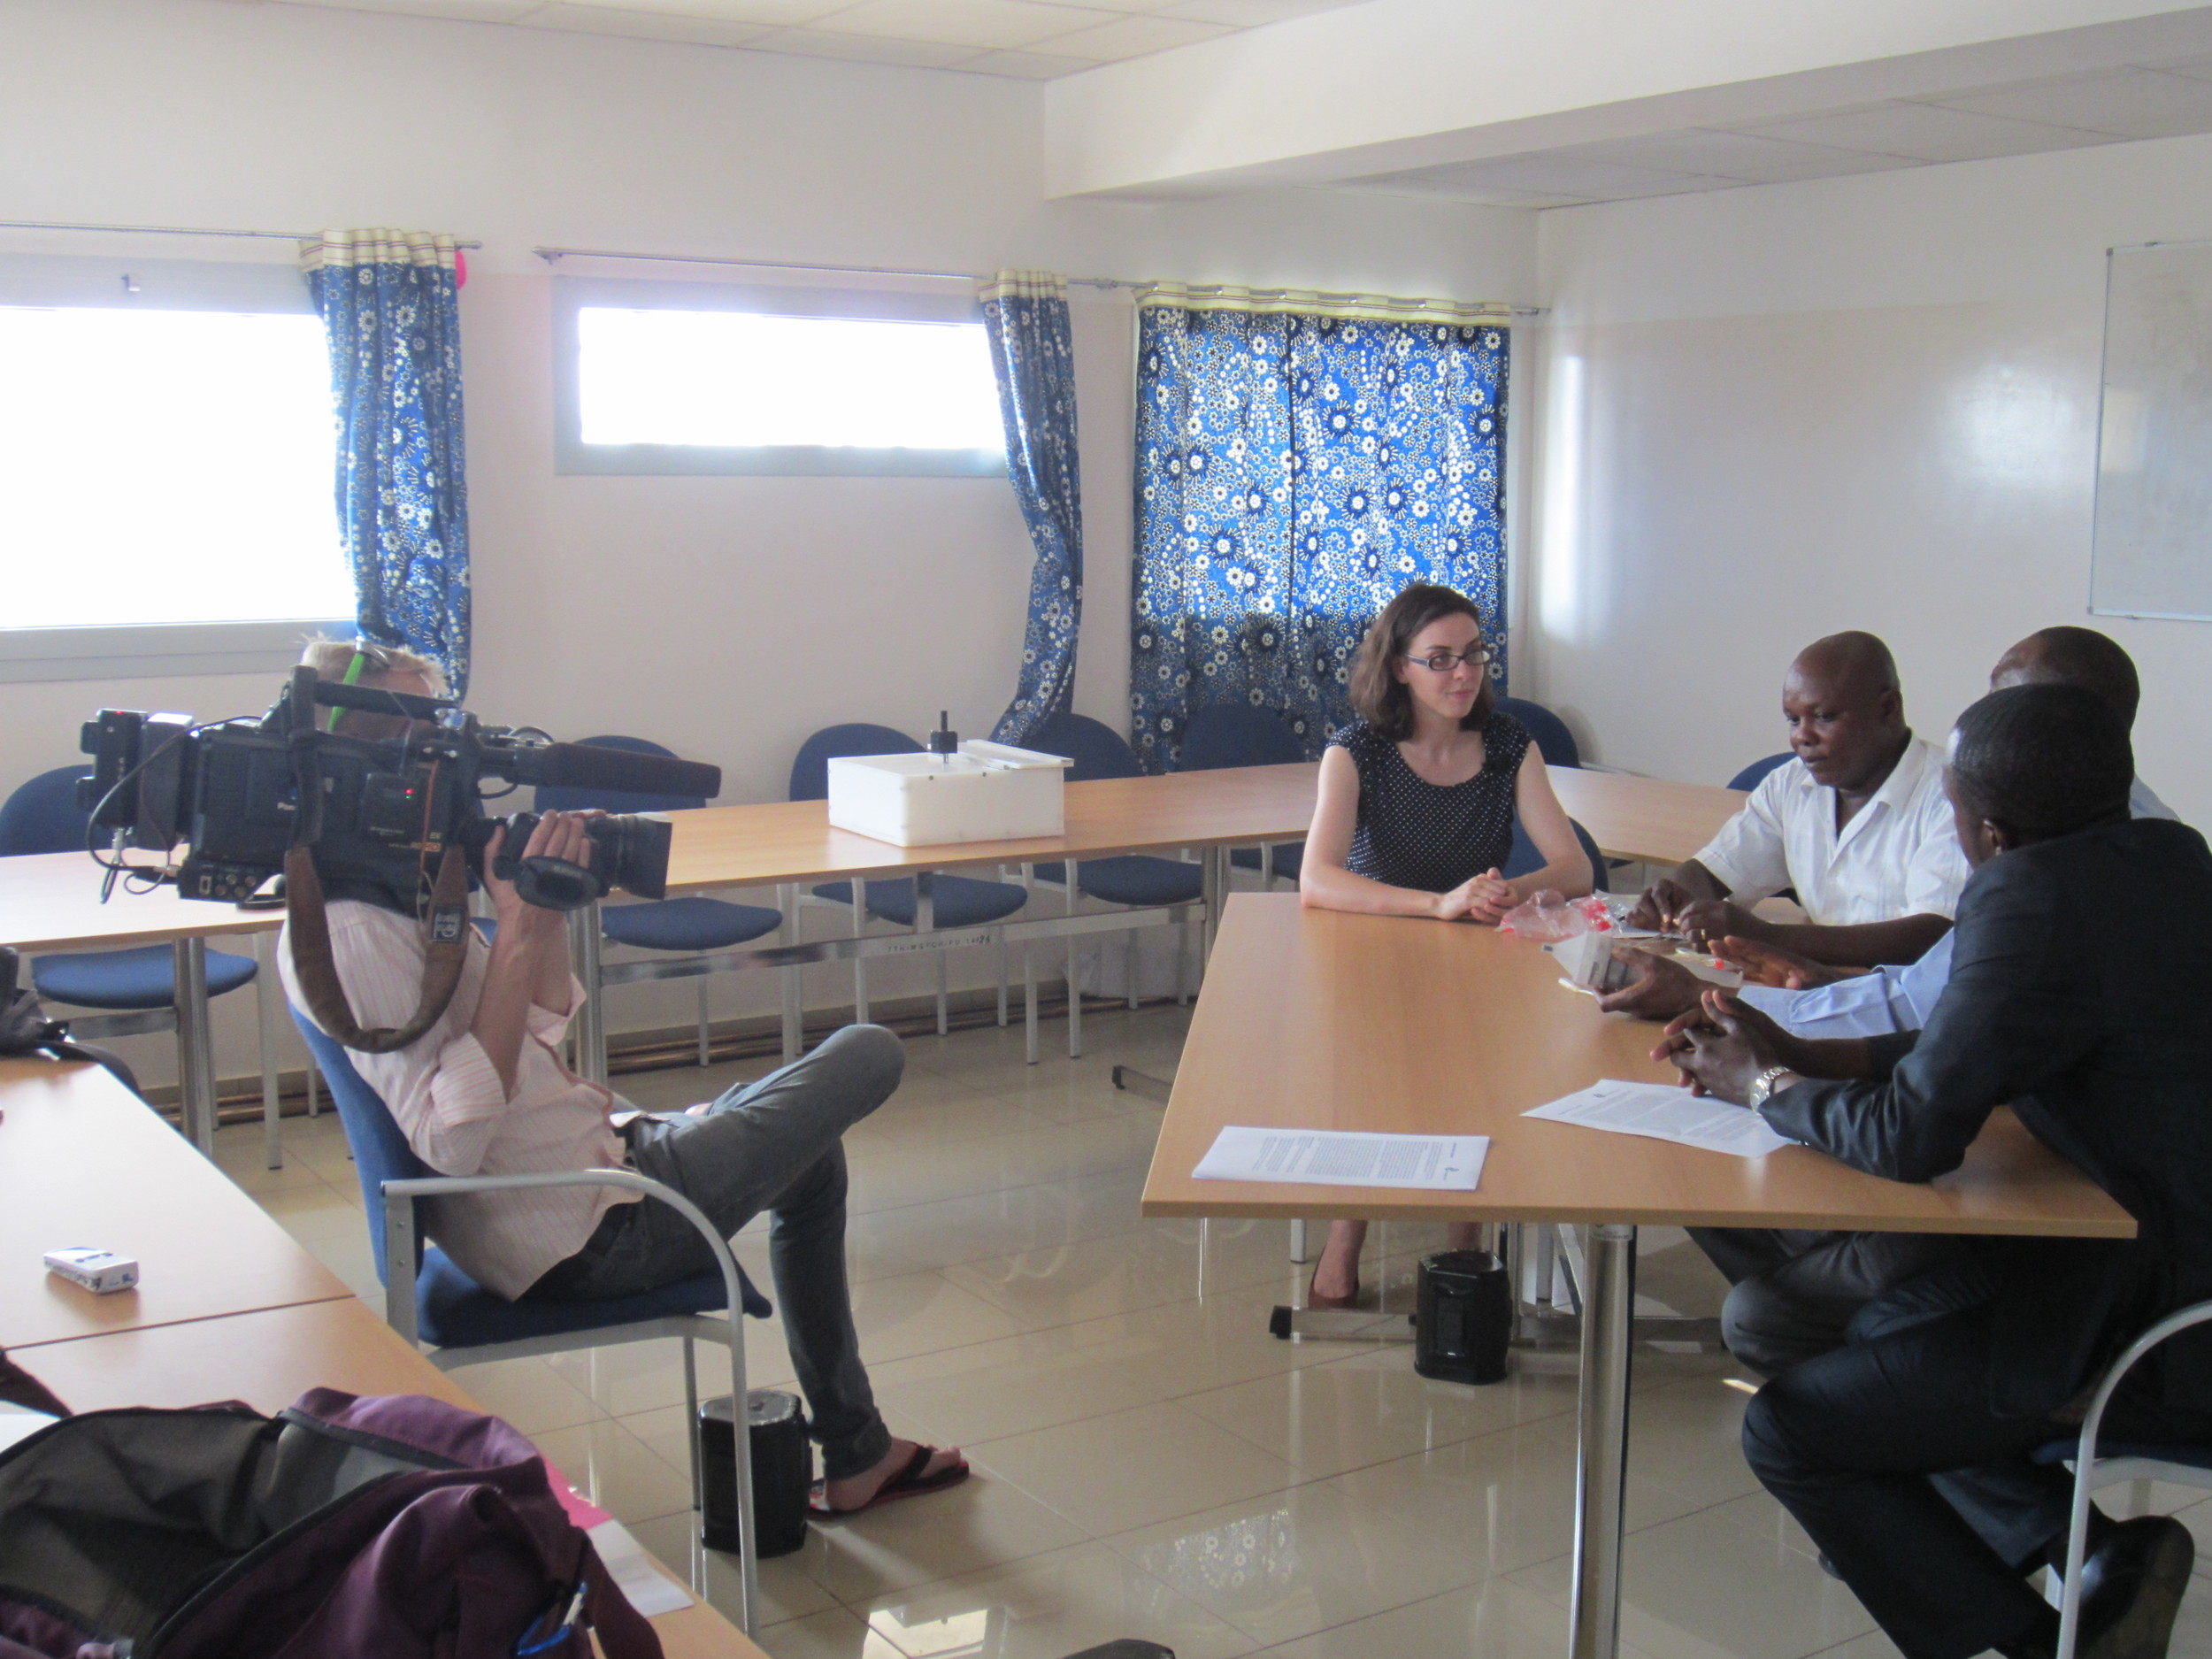 Timothy Wolfer (behind camera) filming Gillian Henker; Dr. Peter Paul Bacheyie, Head of Blood Transfusions; Dr. David Kolbila, Head of OBGYN; and Dr. Asirifi Amoako Samuel, OBGYN consultant, at Tamale Teaching Hospital.